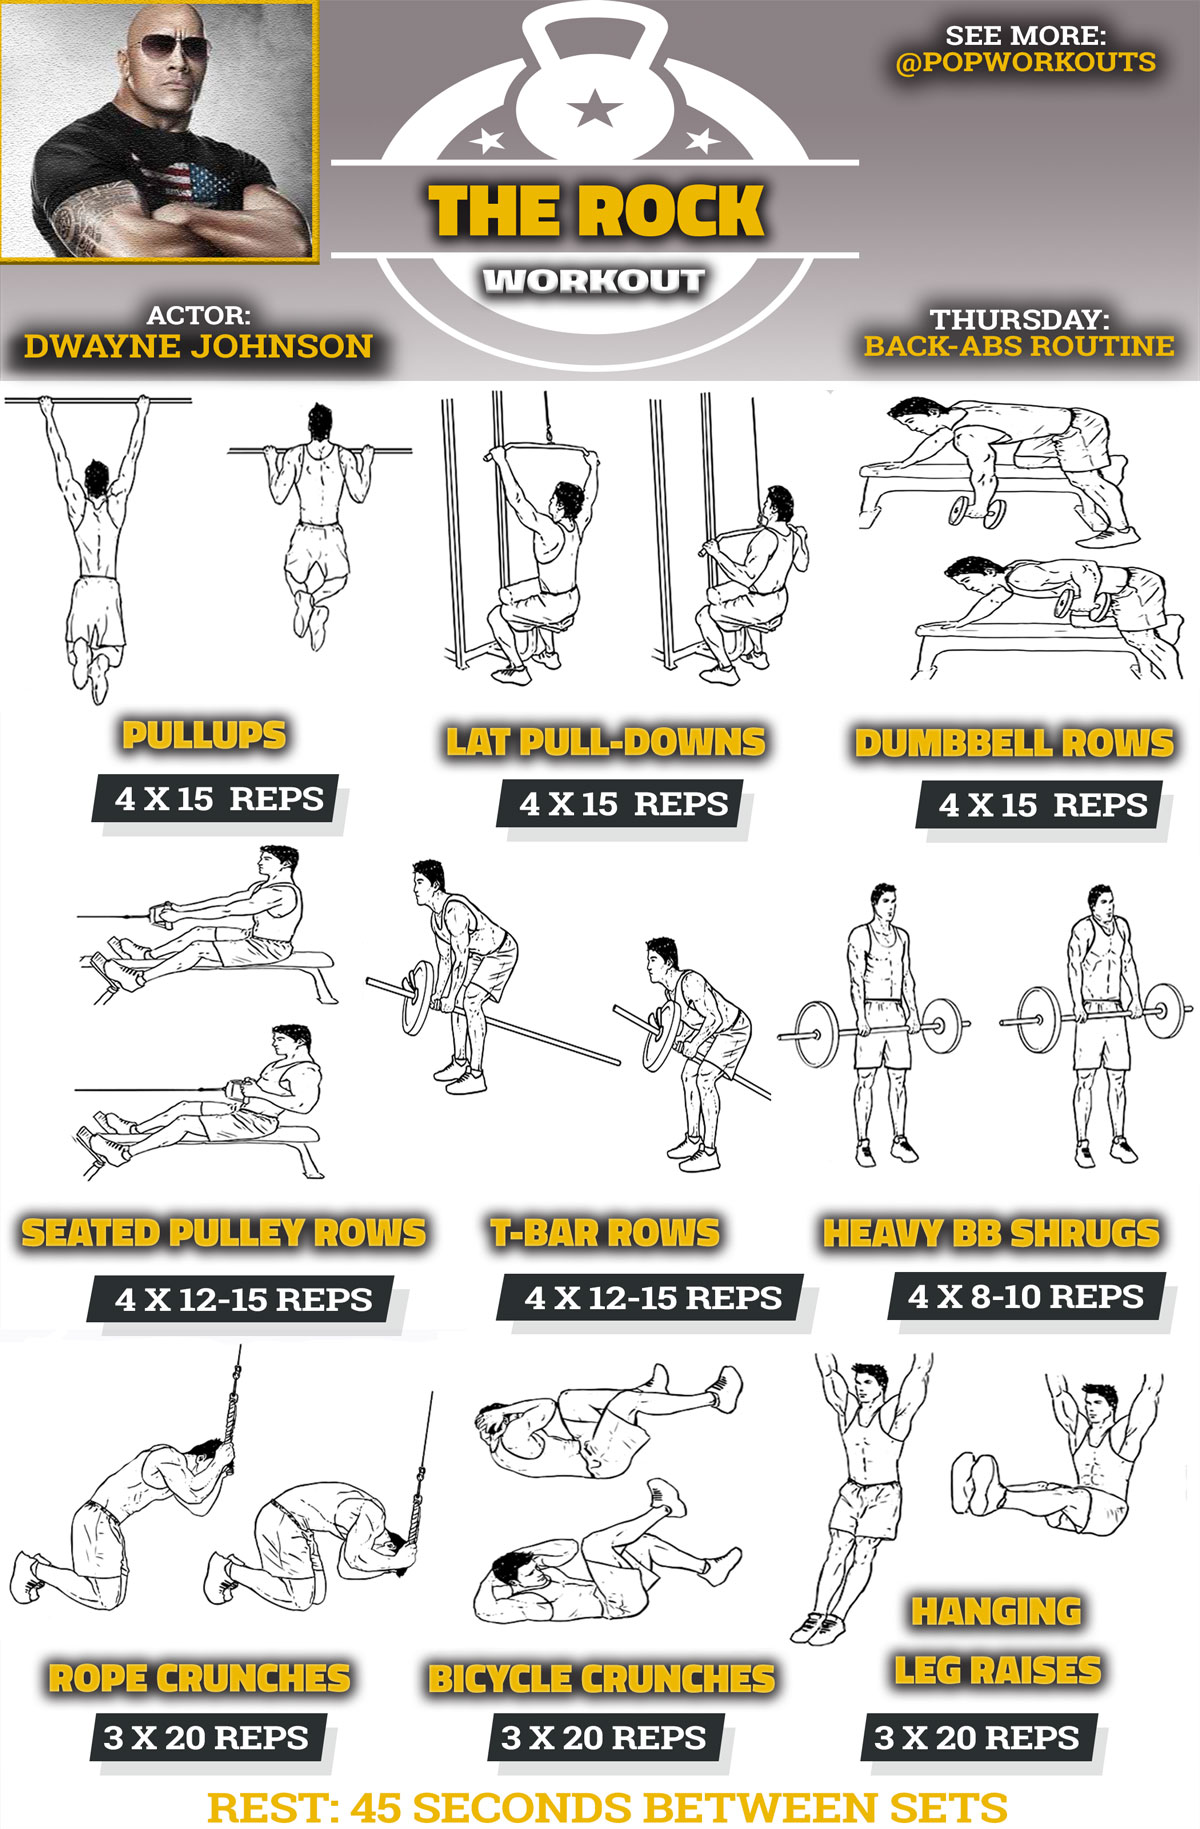 Beginner Upper Body Workout Beginner Upper Body Workout new picture